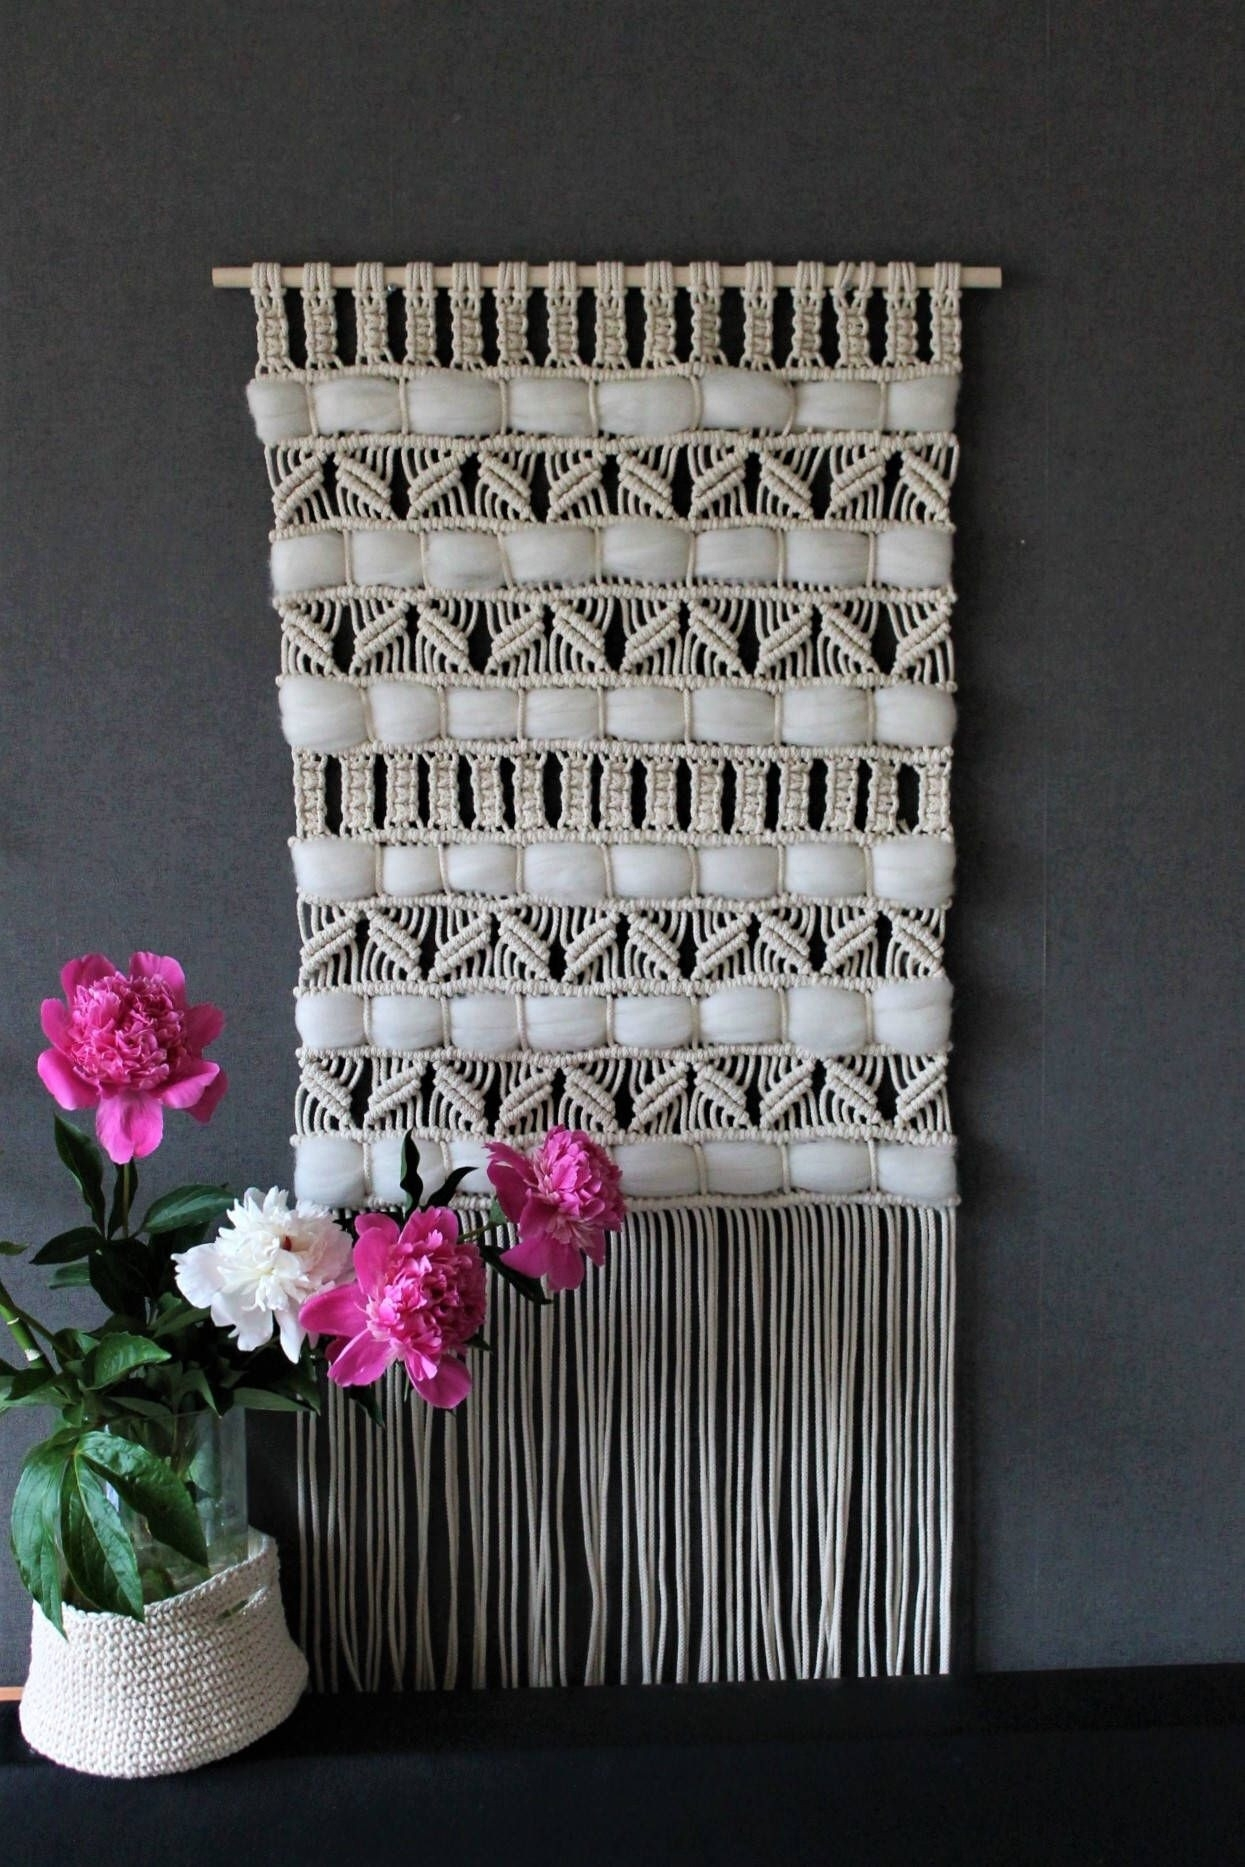 33 Elegant Crochet Wall Art | Wall Art Decorative with Recent Crochet Wall Art